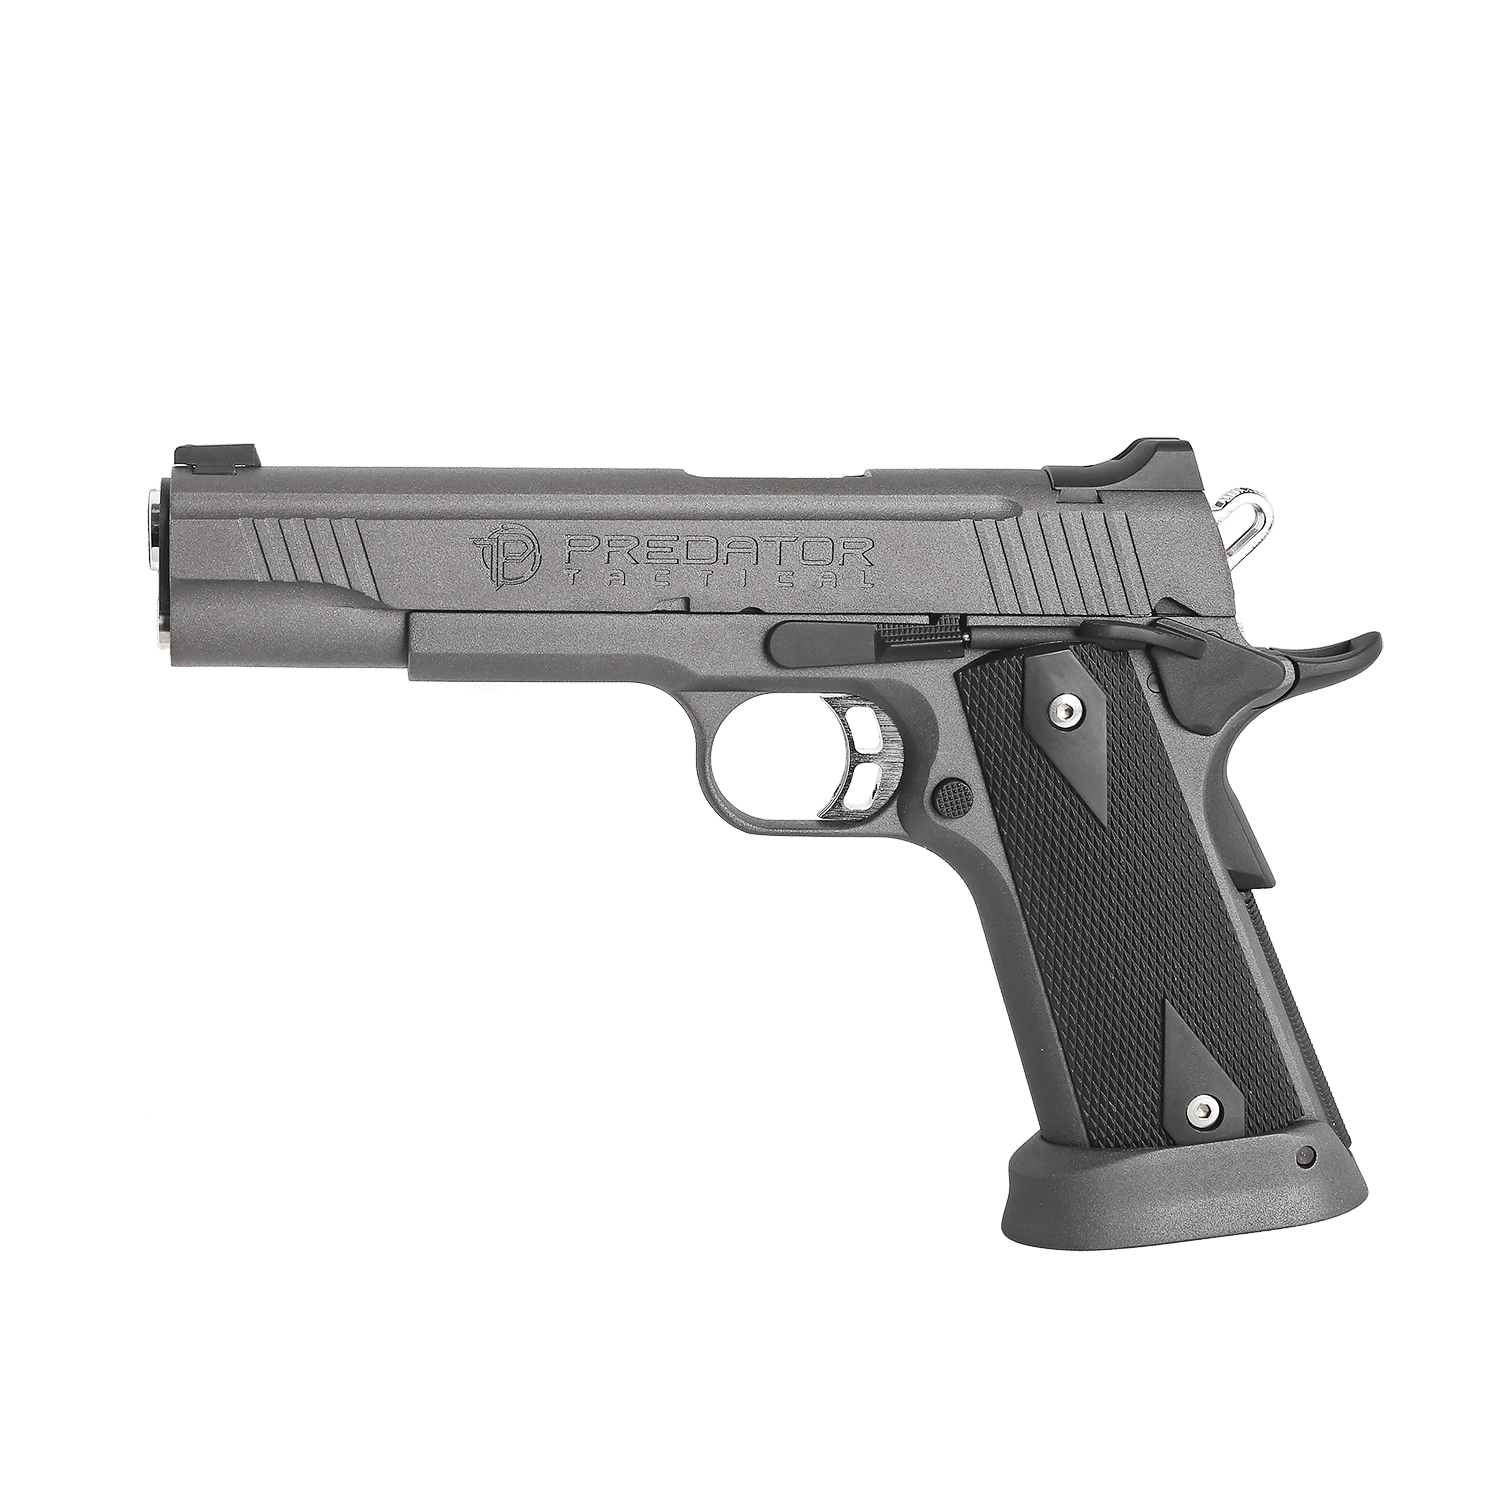 King Arms Predator Iron Shrike Full Metal GBB Pistol - Grey